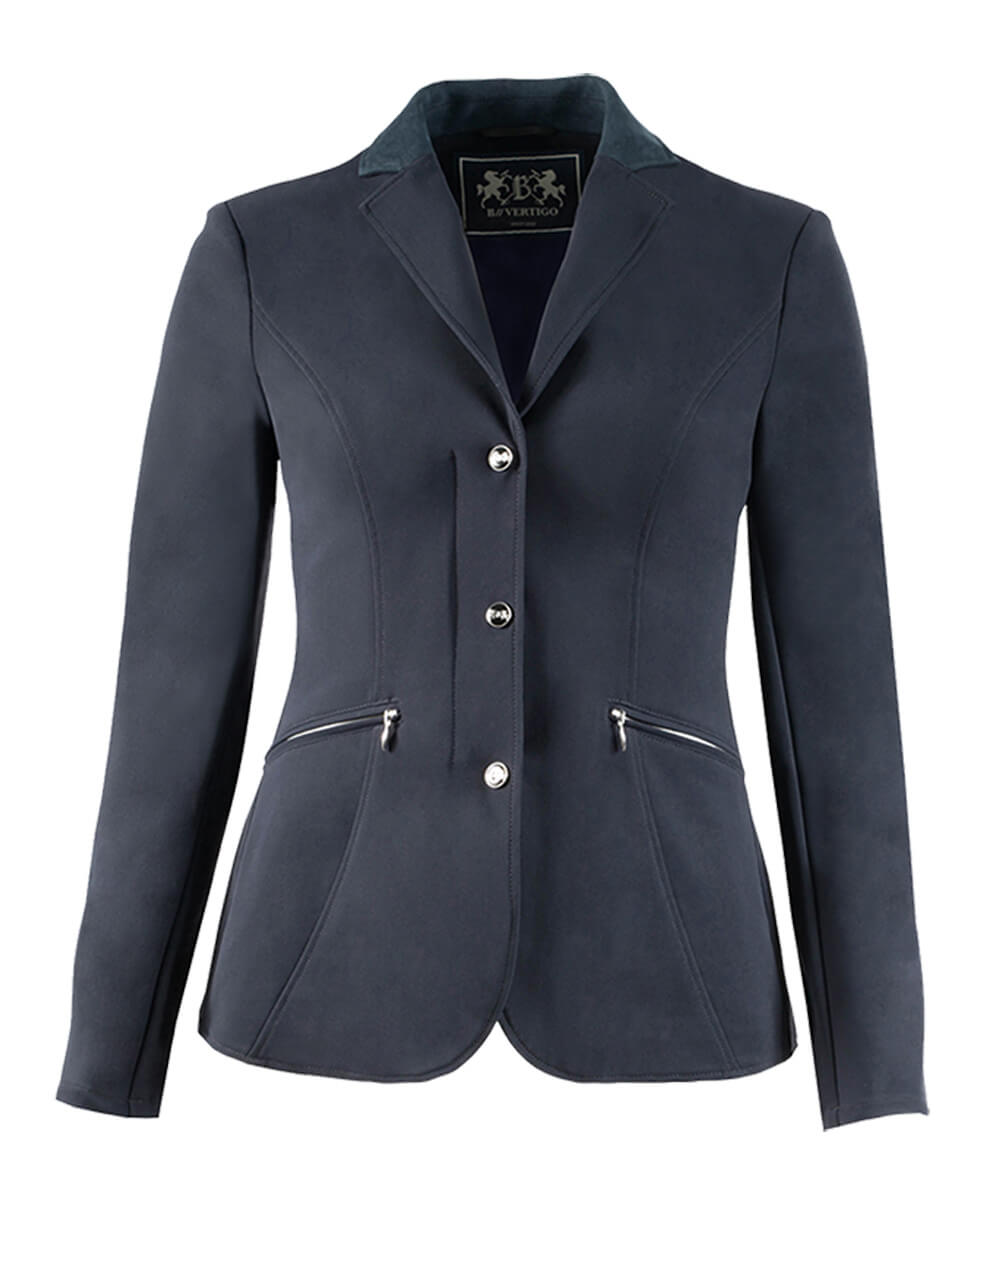 High class lightweight classy softshell showjacket with slanted zip front pockets, zip closure with clip buttons for a secure fit